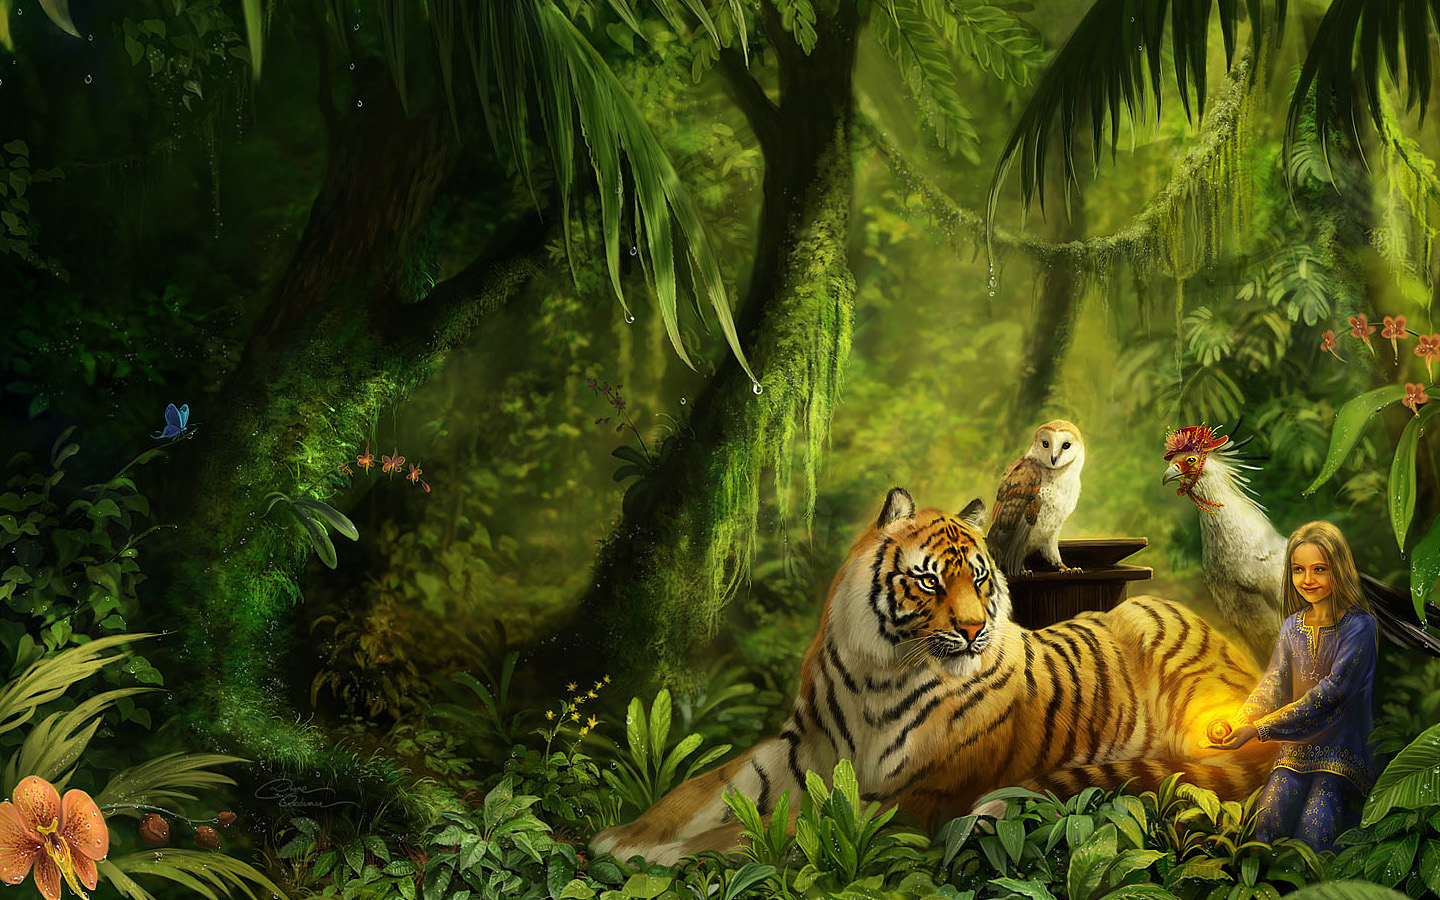 Wallpaper fantasy wallpapers full hd desktop backgrounds - Best animal wallpaper download ...